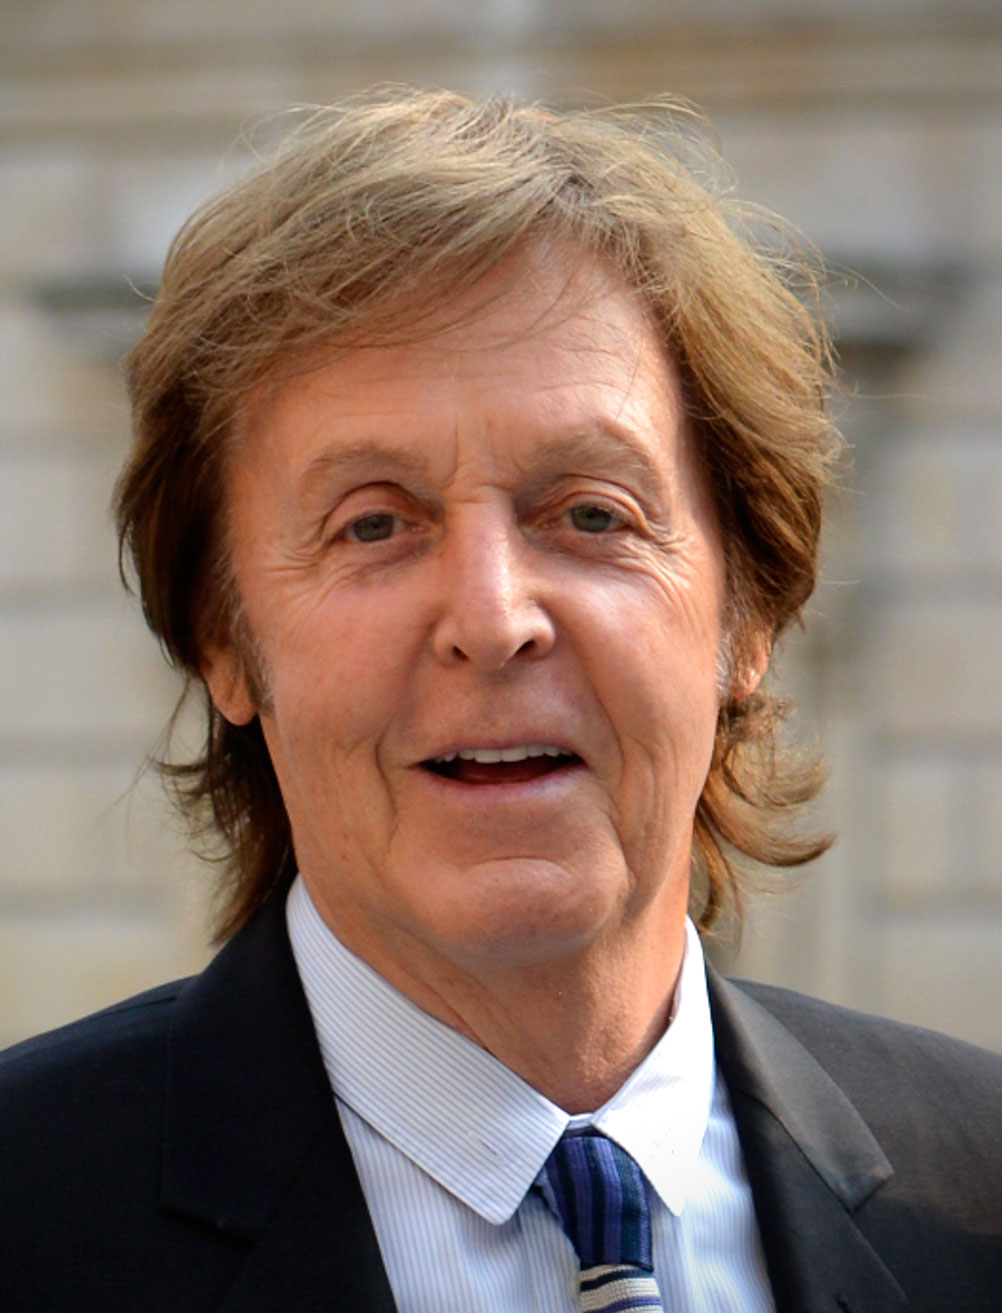 Paul McCartney - Healthy Aging Magazine